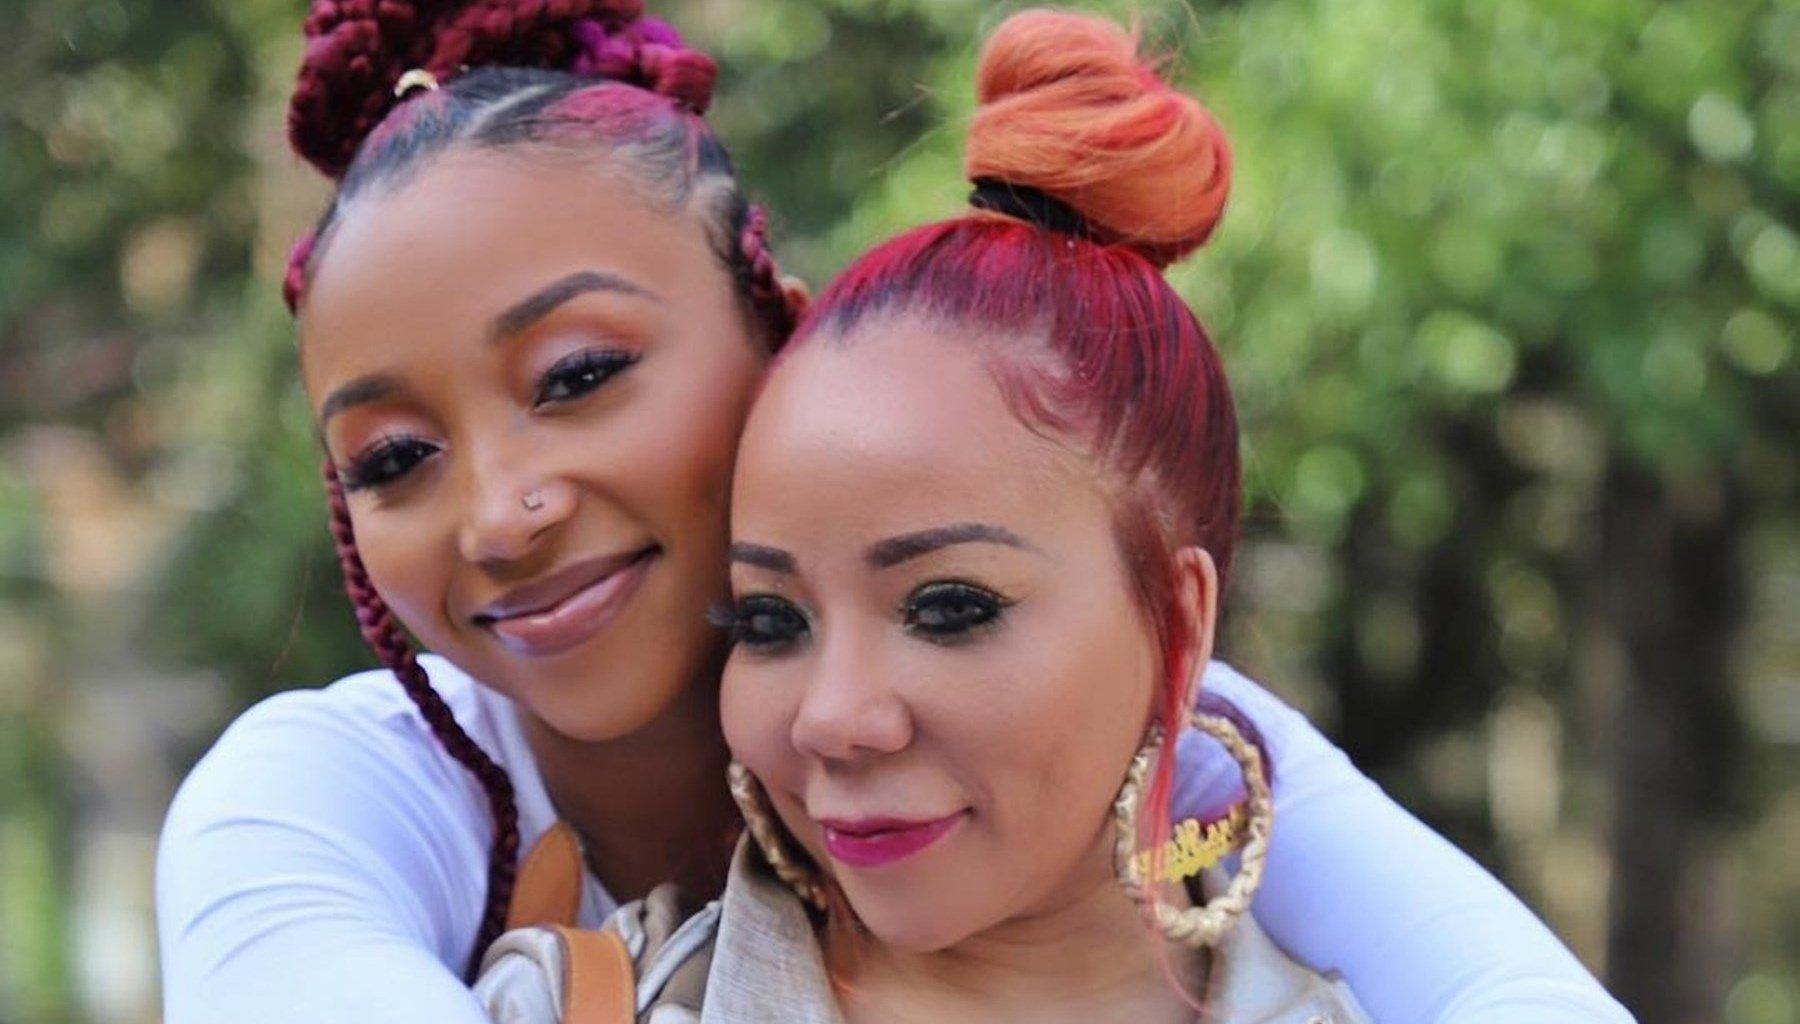 Tiny Harris Gets Praised For Creating 'The Mix' Featuring Zonnique Pullins And All Kinds Of Teen Guests